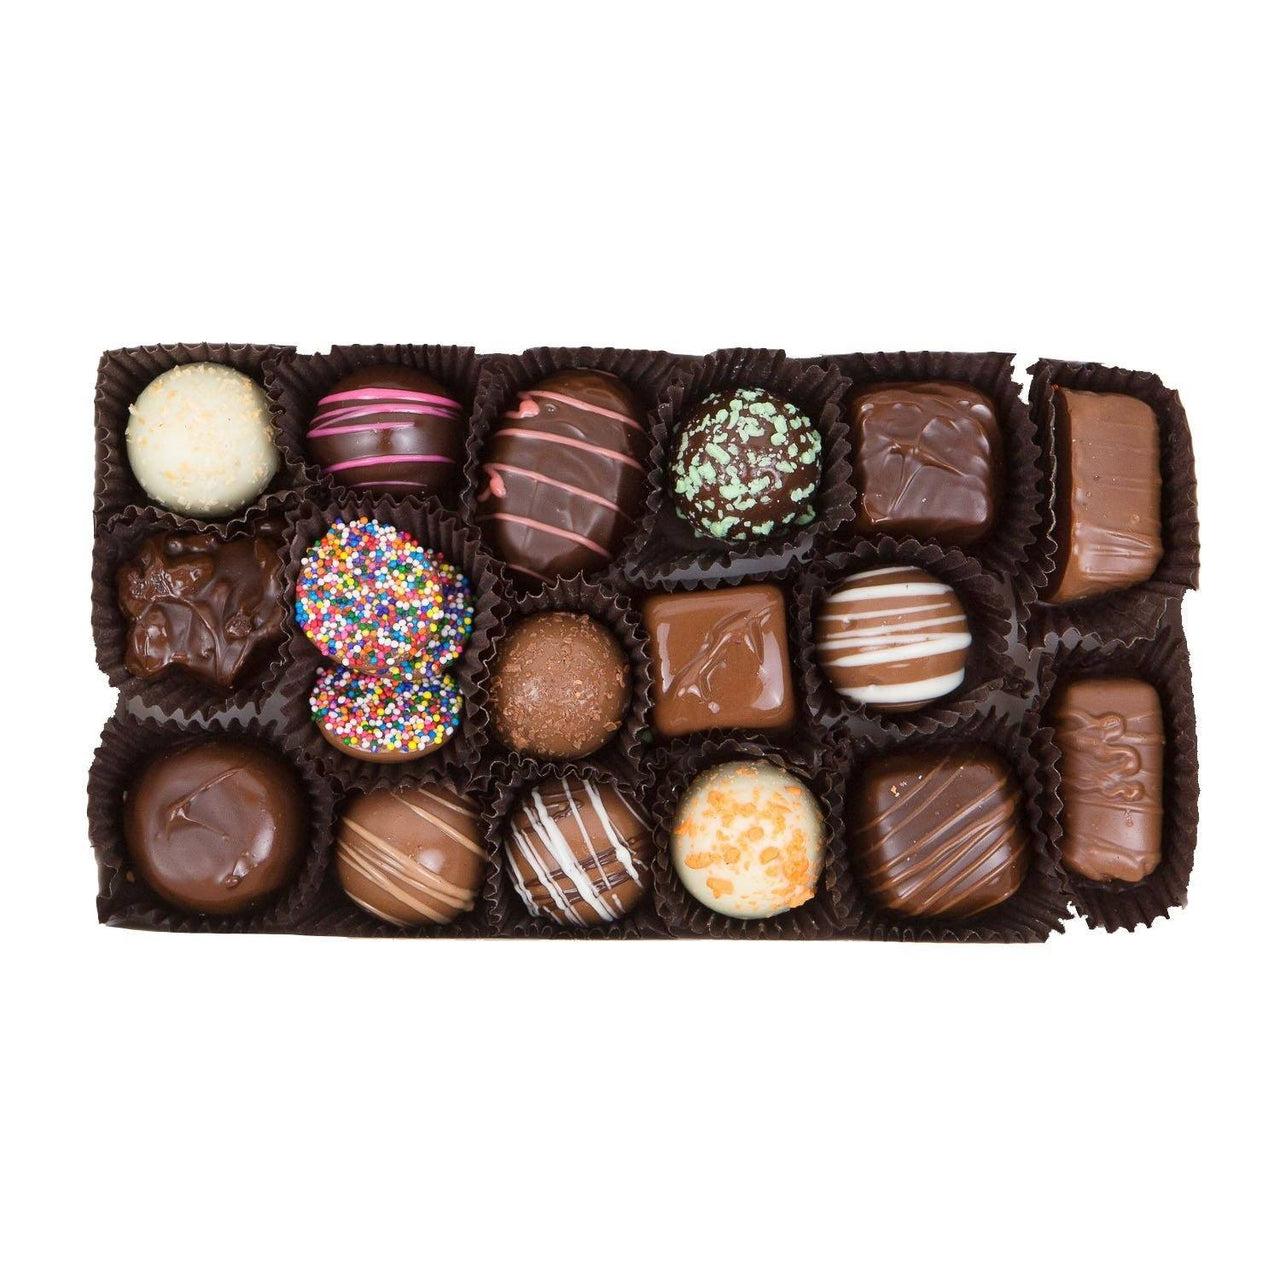 Family Gift Ideas - Chocolate Assortment Gift Box - Jackie's Chocolate (4336495984755)